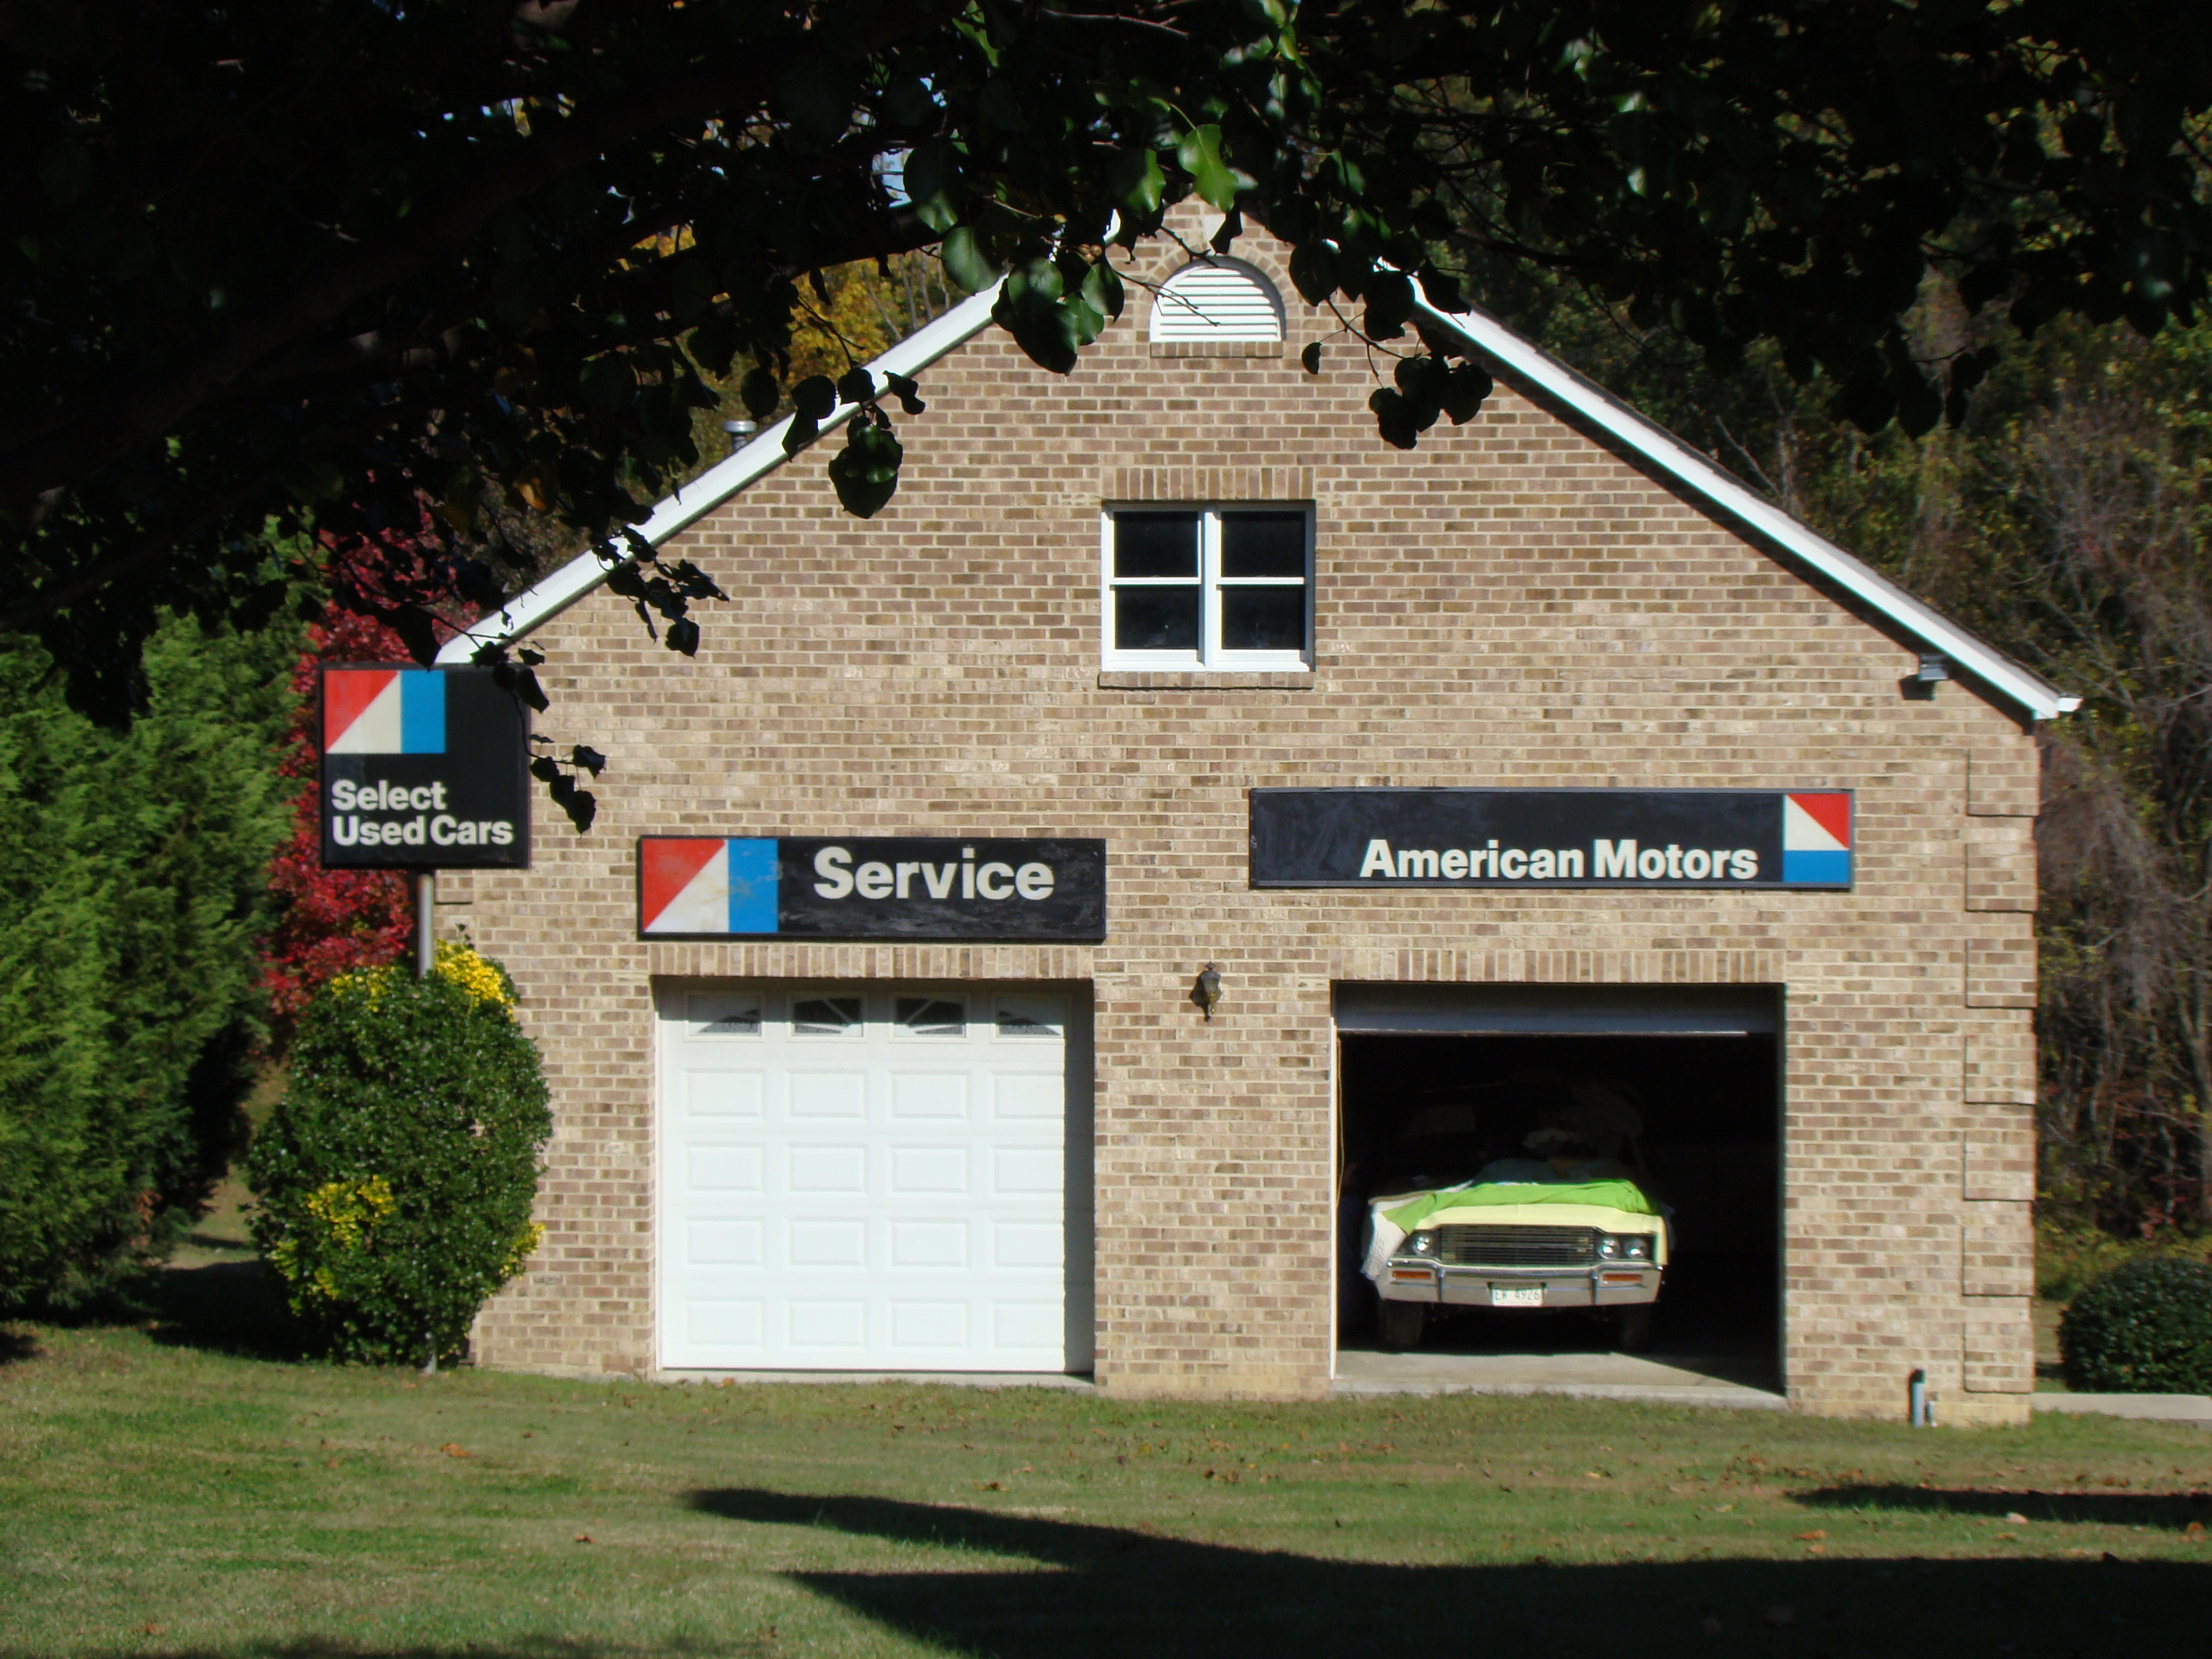 File Quot Dream Quot Garage In Backyard With Vintage Amc